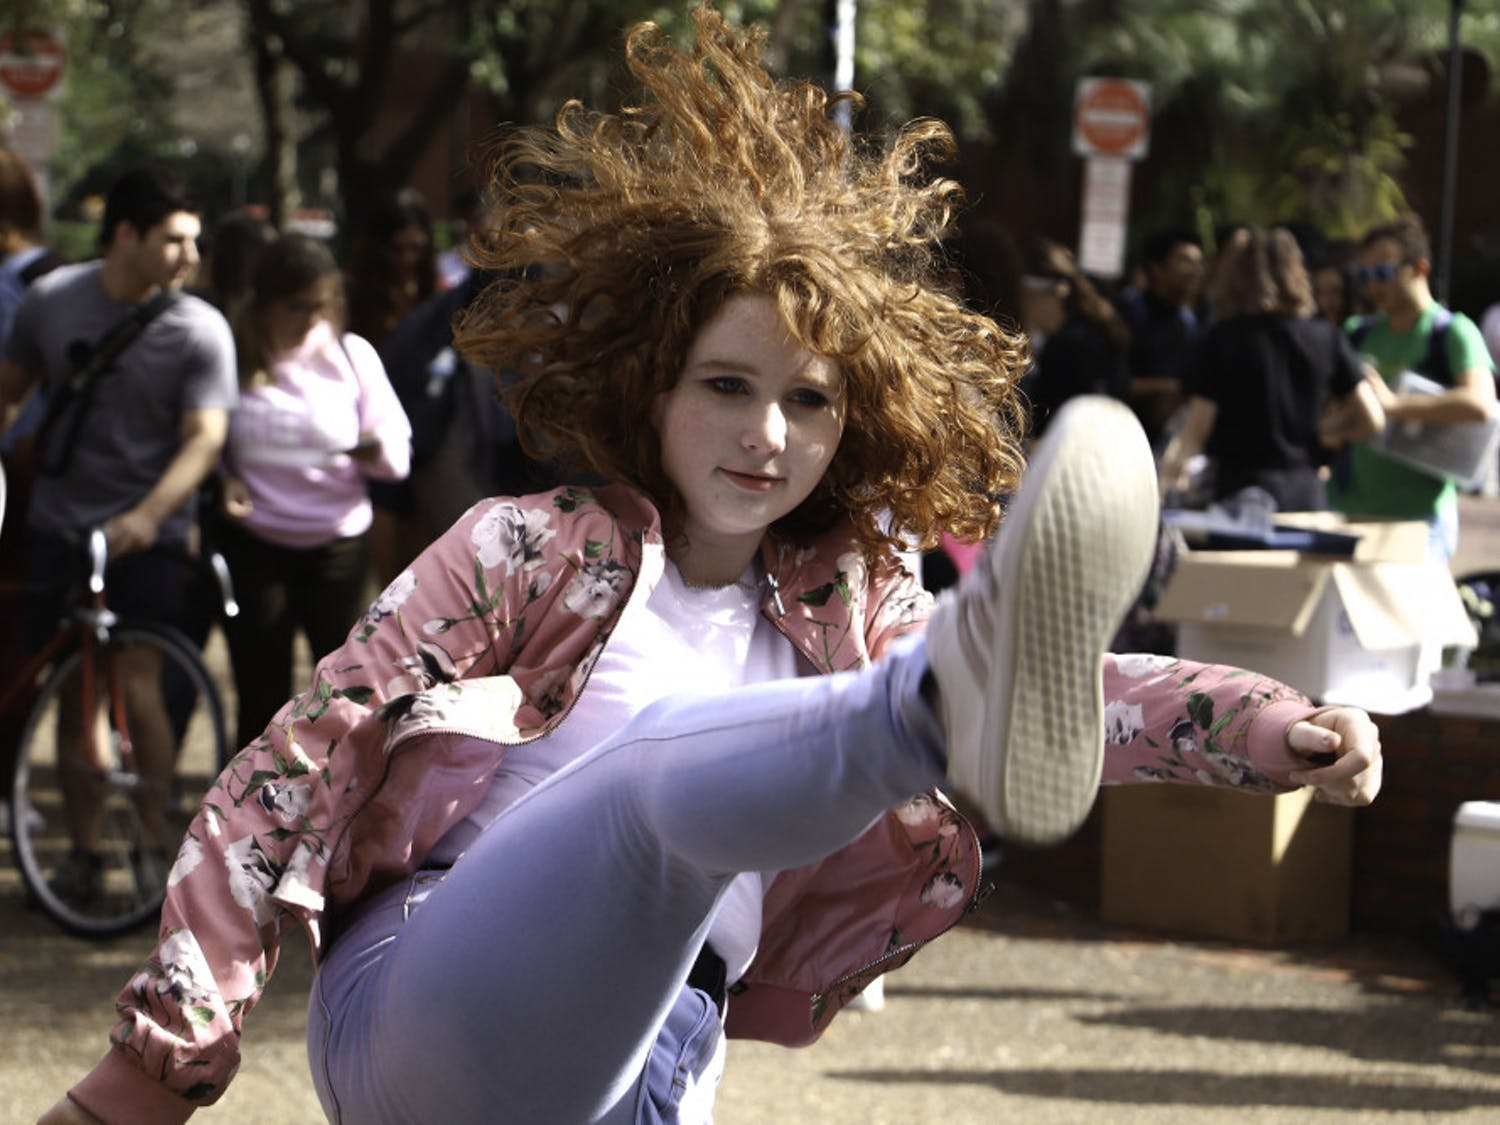 Genesis Dance Crew, UF's first K-pop cover group, performs in Turlington Plaza on Wednesday afternoon.